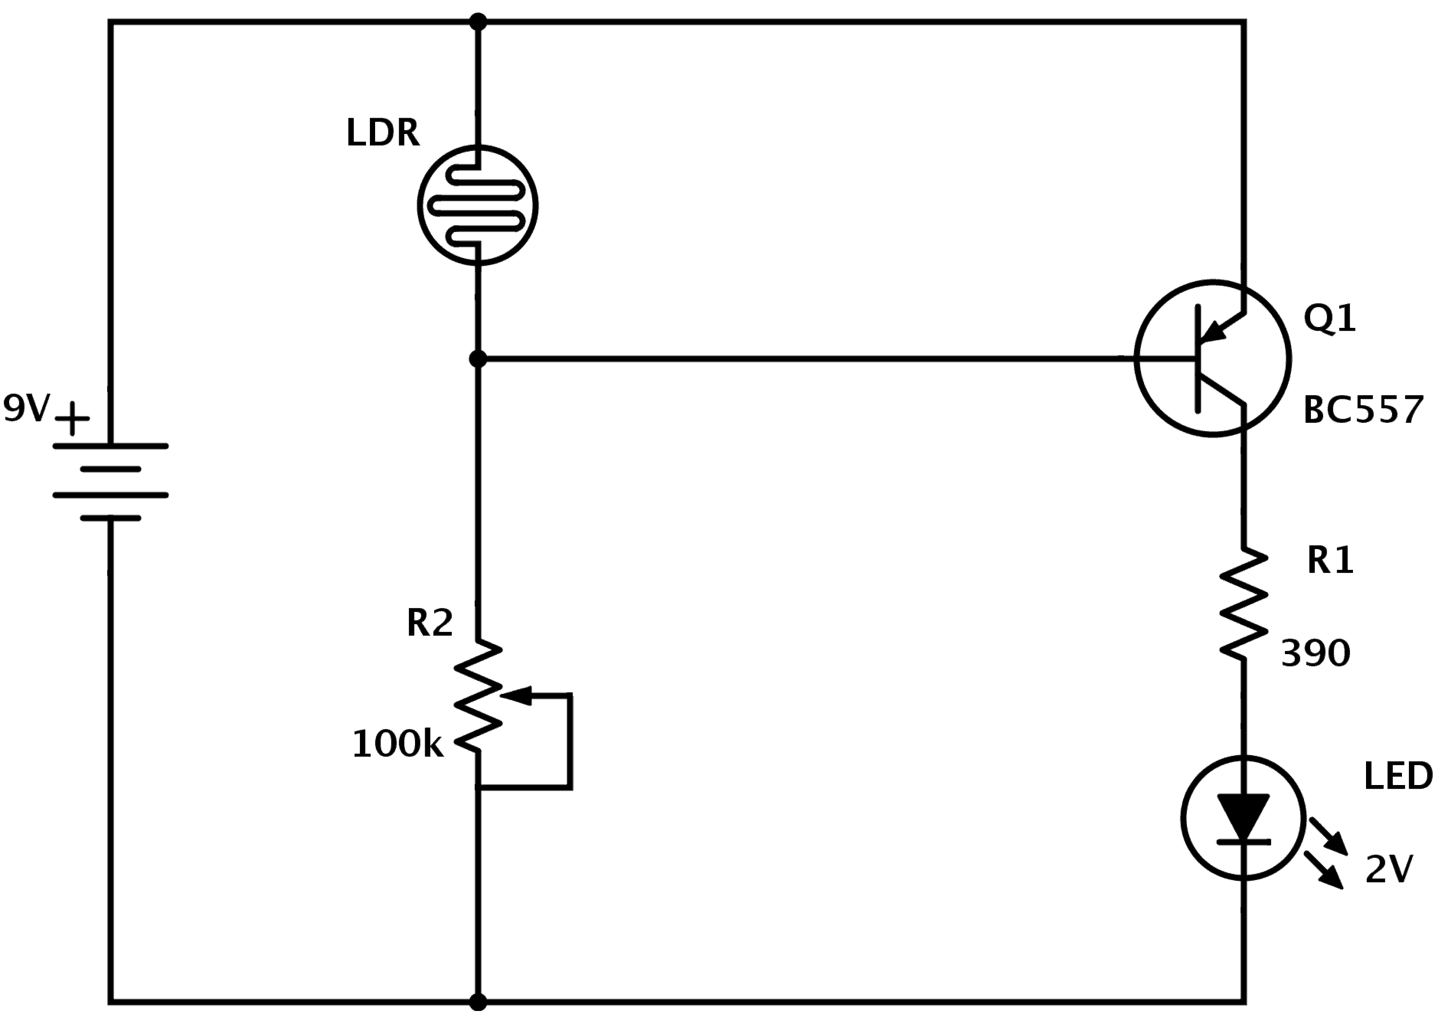 Ldr Circuit Diagram Build Electronic Circuits Open Close Limit Switch Wiring With Pnp Transistor Dark Detector